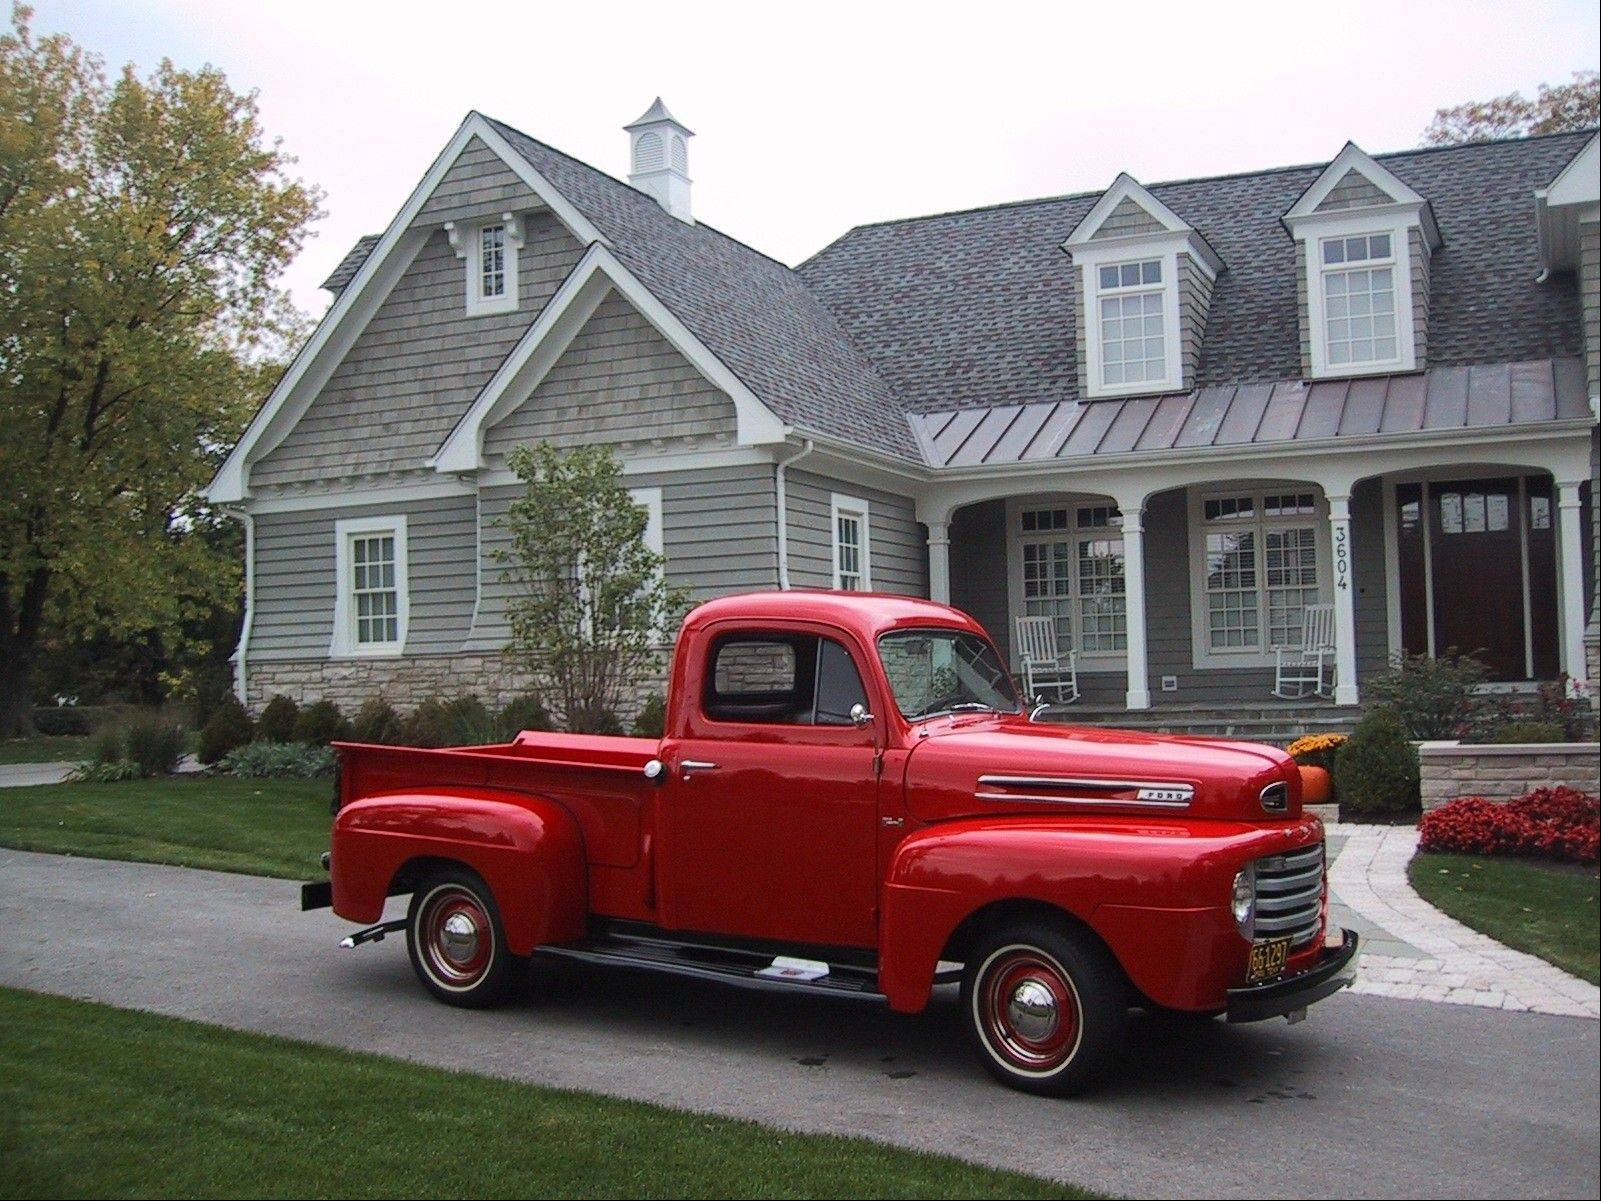 Brad Buell, who owns Buell Insurance in Libertyville, owns this Ford pickup that has been used in commercials.